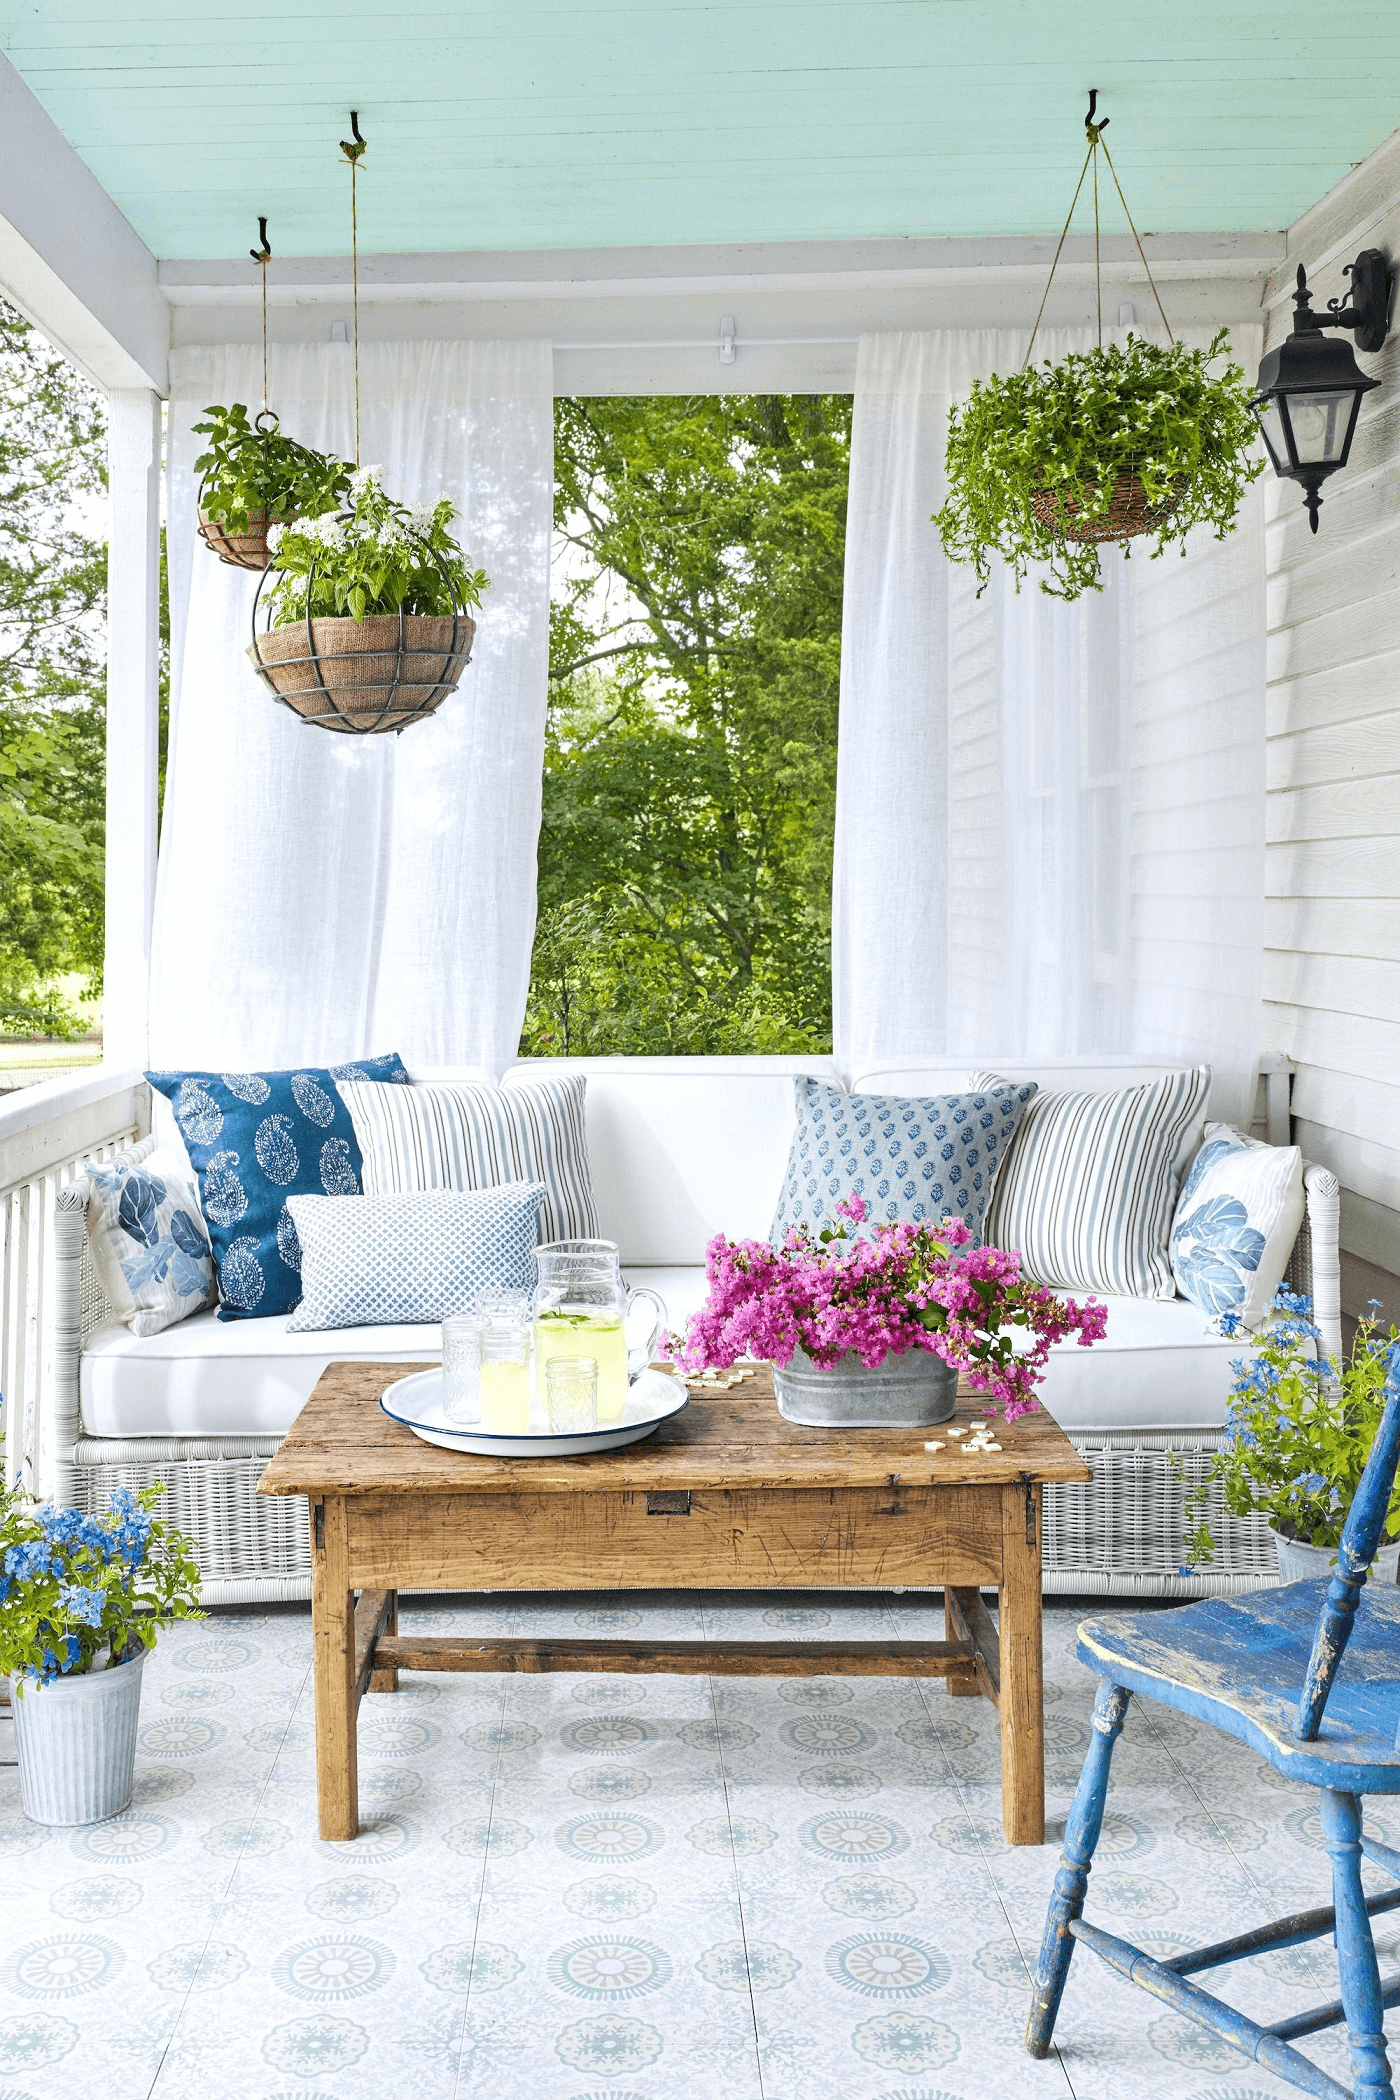 Rustic small front porch decorating ideas for summer with flower pot and colorful pillow Bright Patterned Cushions